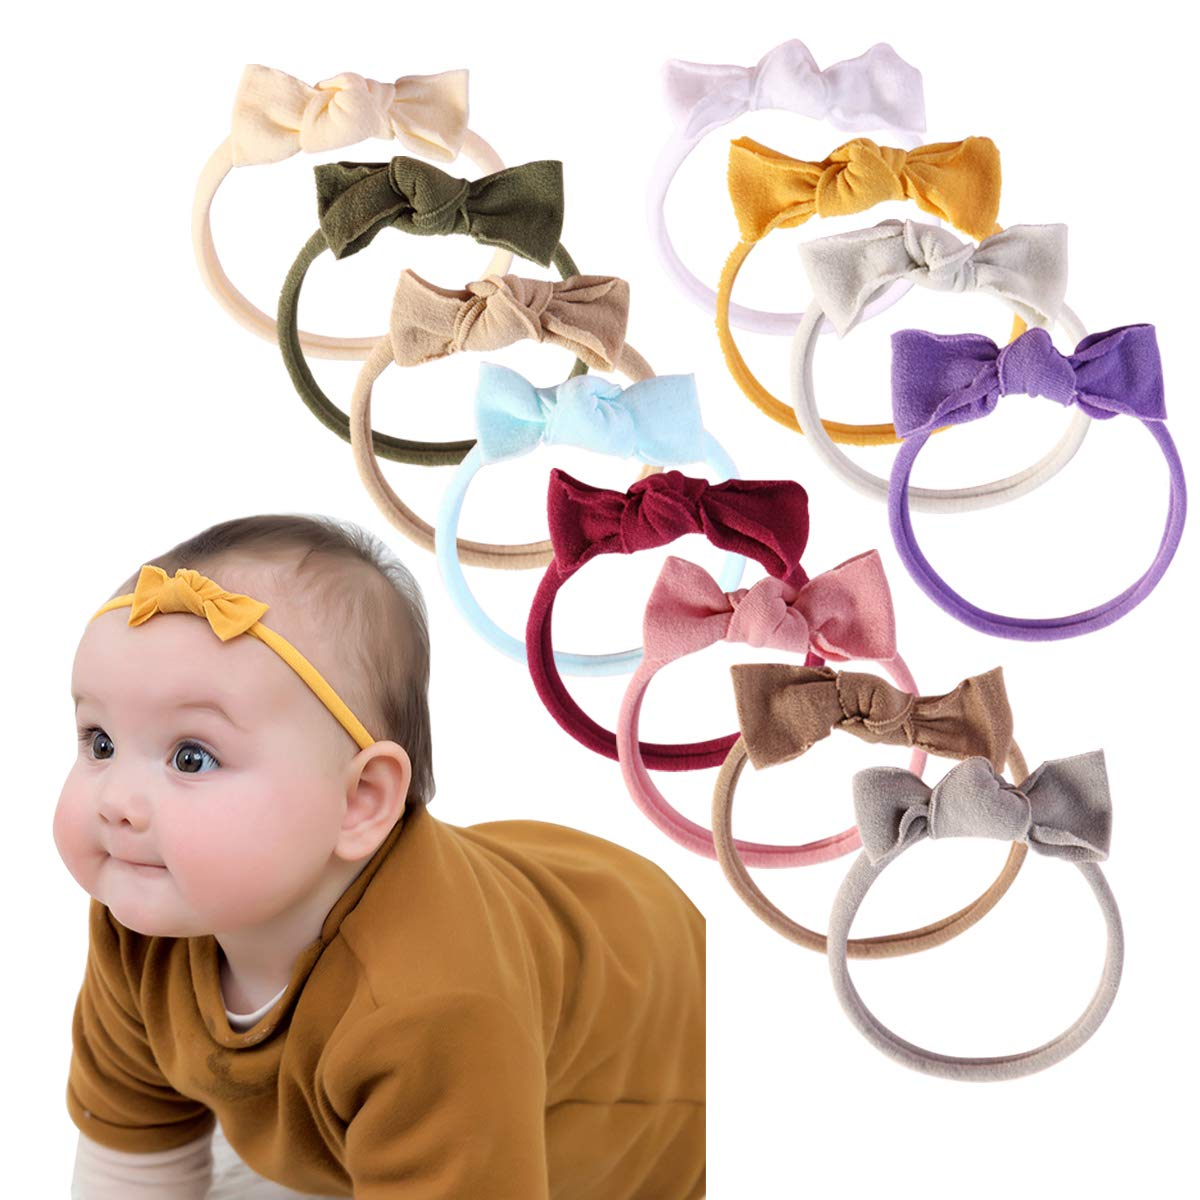 Baby Girl Headbands and Bows Classic Knot Nylon Headwrap Super Soft Stretchy Nylon Hair bands for Newborn Toddler, Children (AP12) by Mookiraer